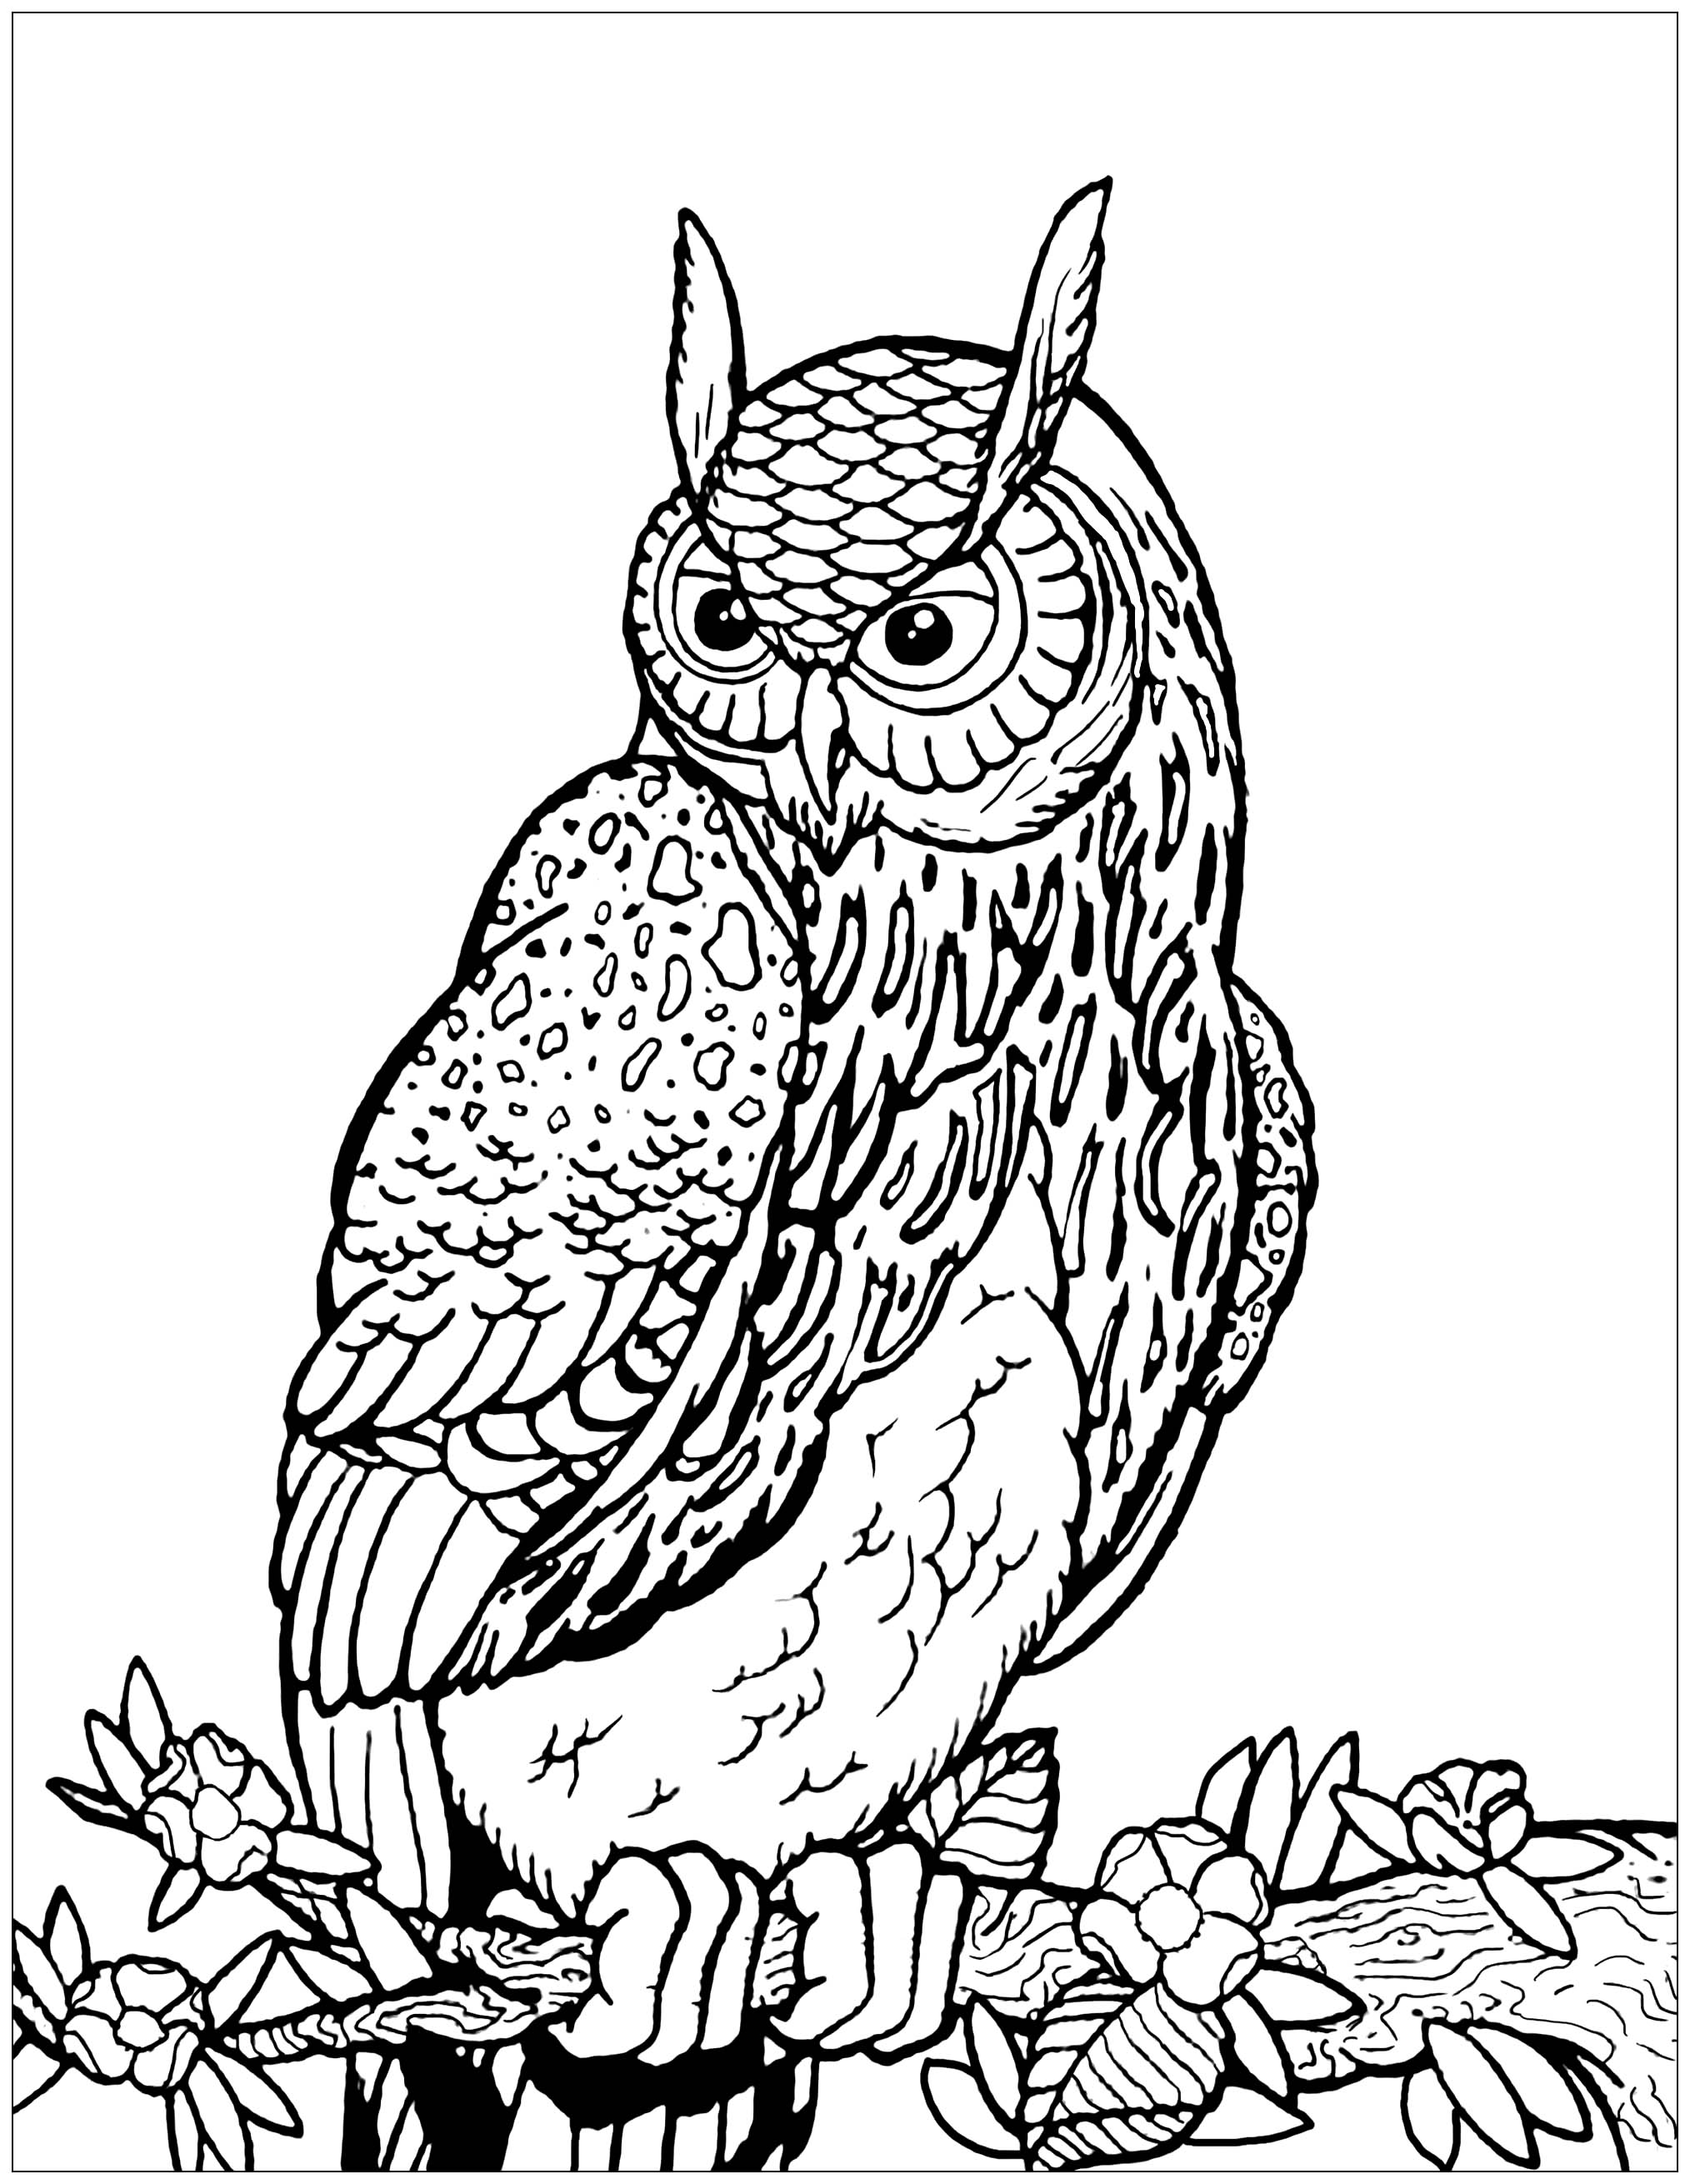 Owls to download for free - Owls - Coloring pages for kids